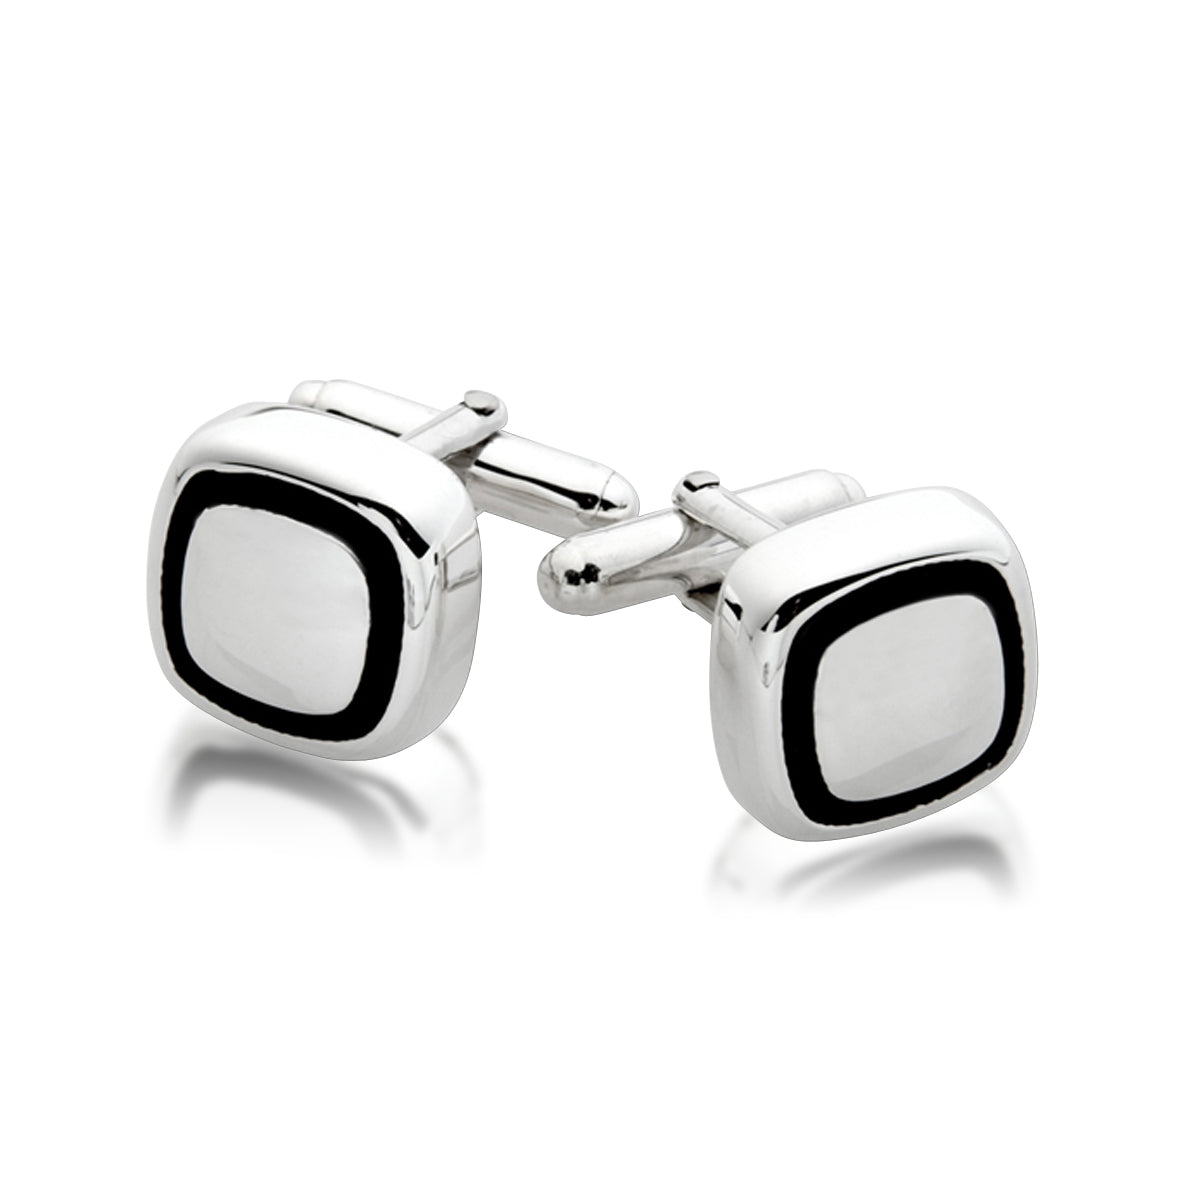 ZN CL431 OXIDIZED SQUARE CUFF LINK